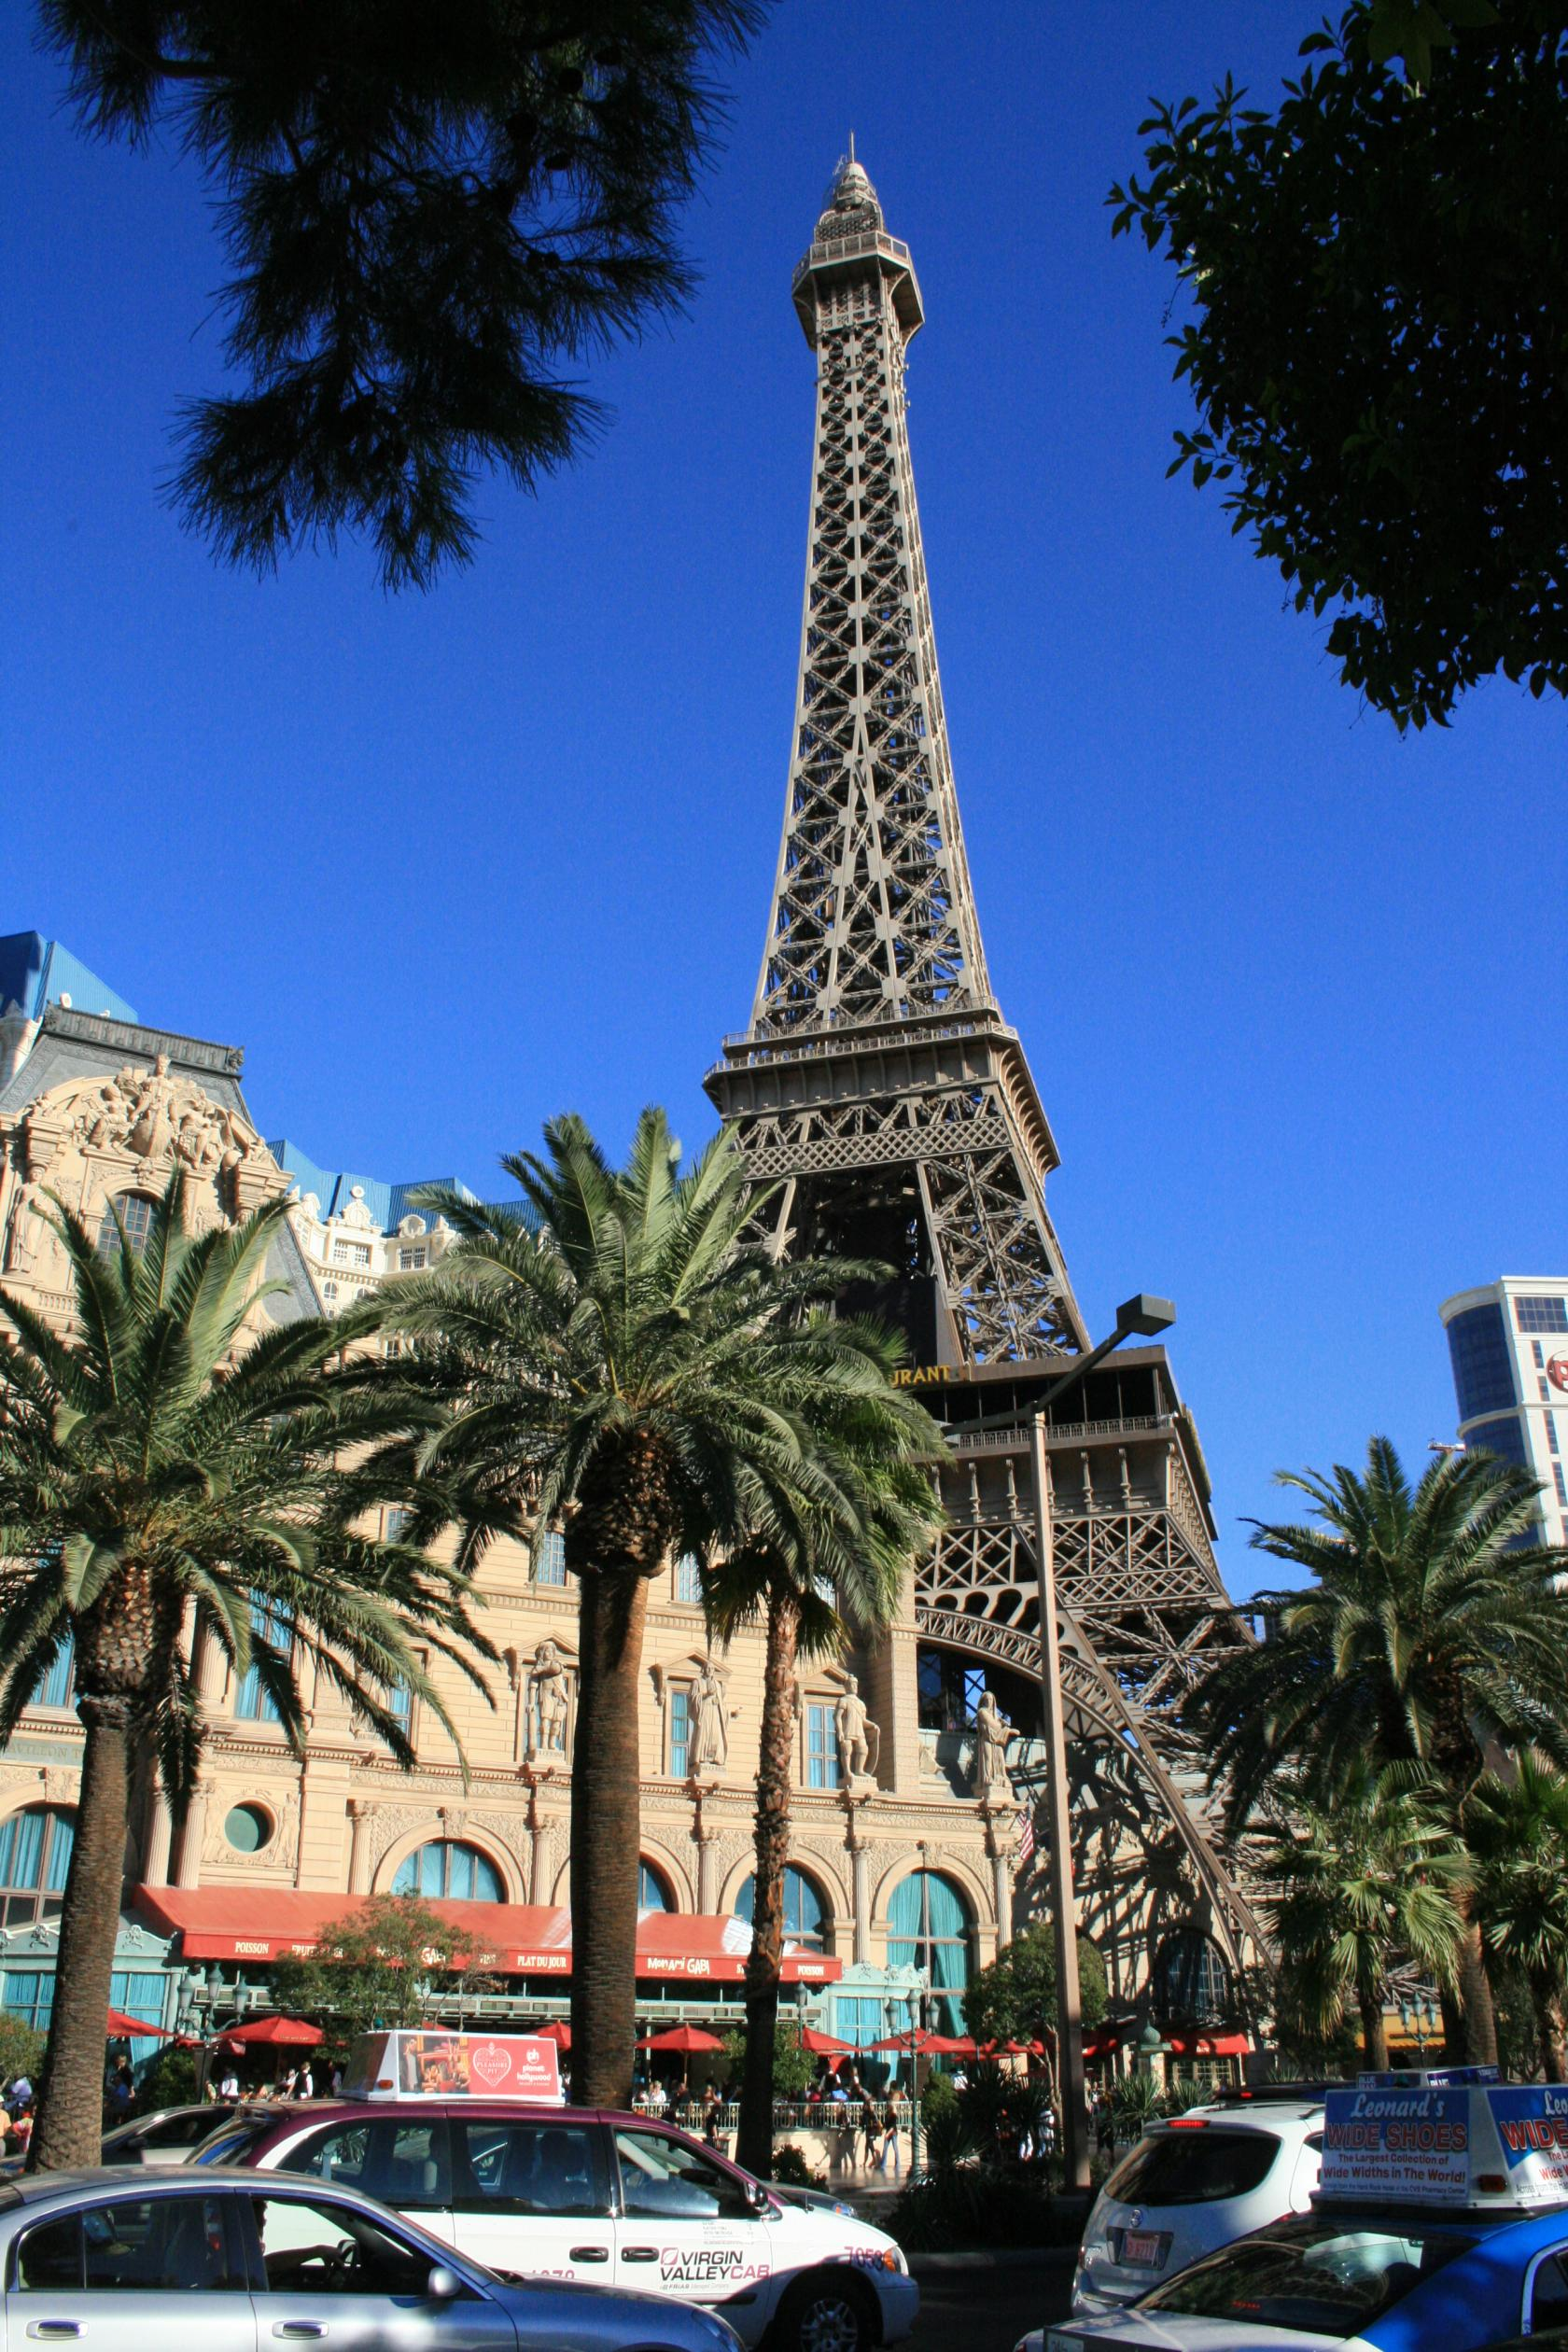 las vegas nevada photo a fake eiffel tower in front of palm trees